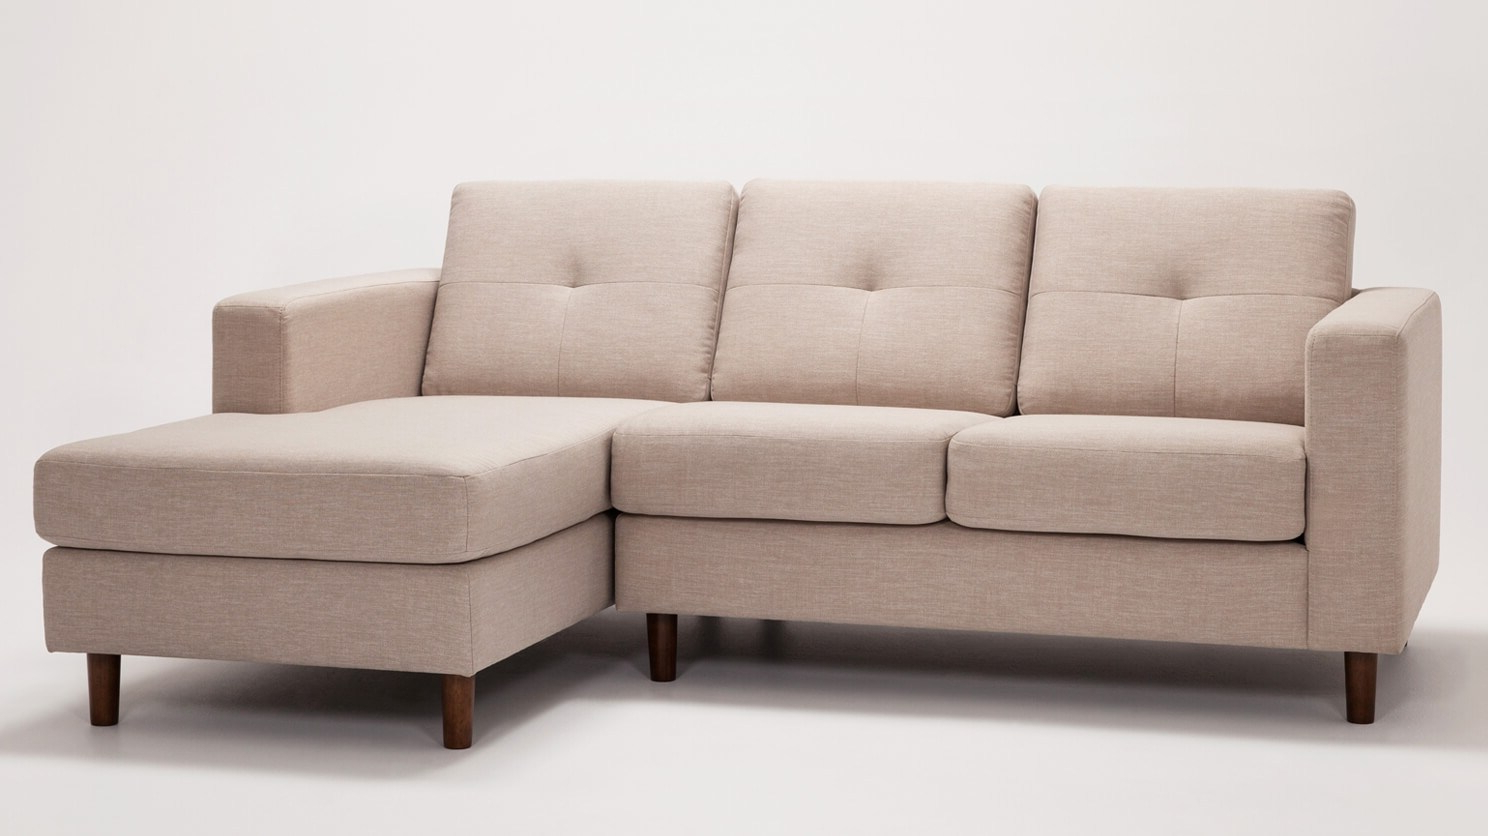 Magnificent 30129 Sl Sc 2 Sectionals Solo Sectional Key Largo Almond Throughout 2018 Mcculla Sofa Sectionals With Reversible Chaise (View 11 of 20)